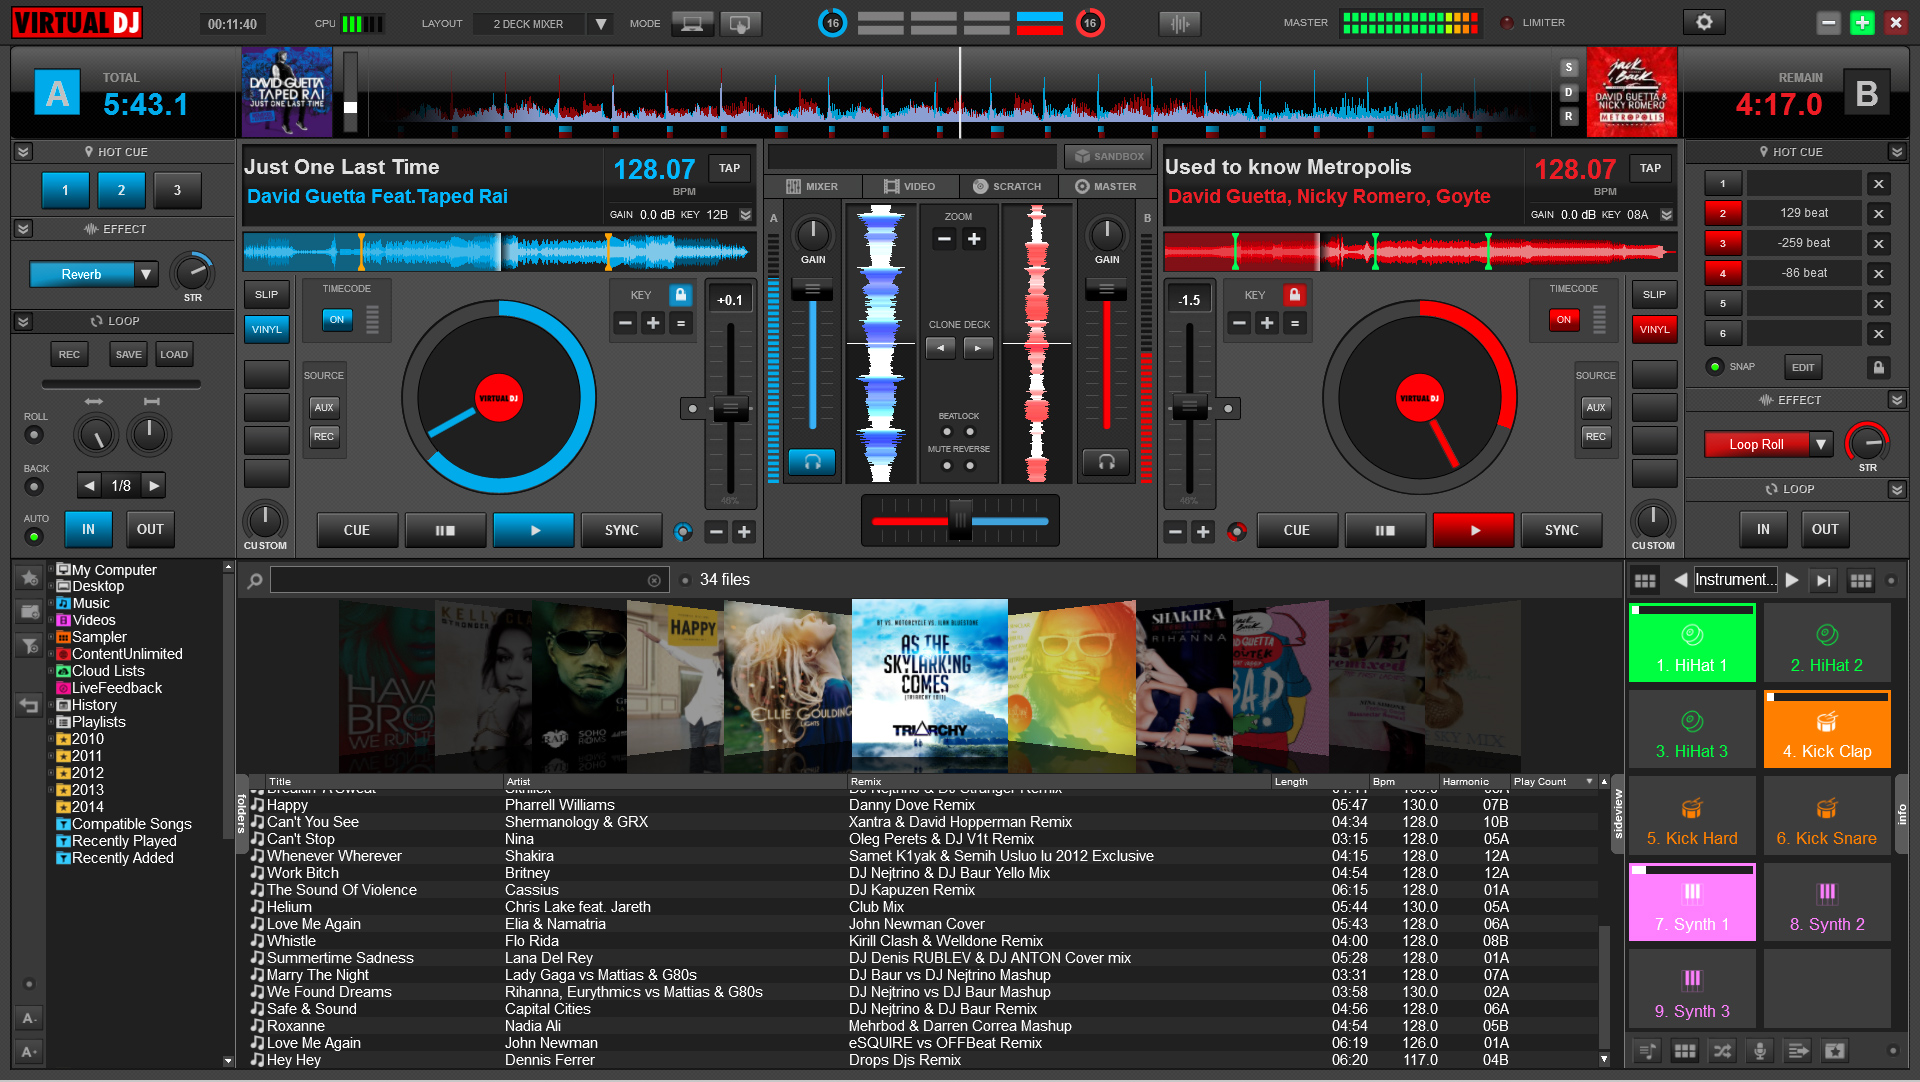 Virtual DJ Home for Mac 2018 B4514 full